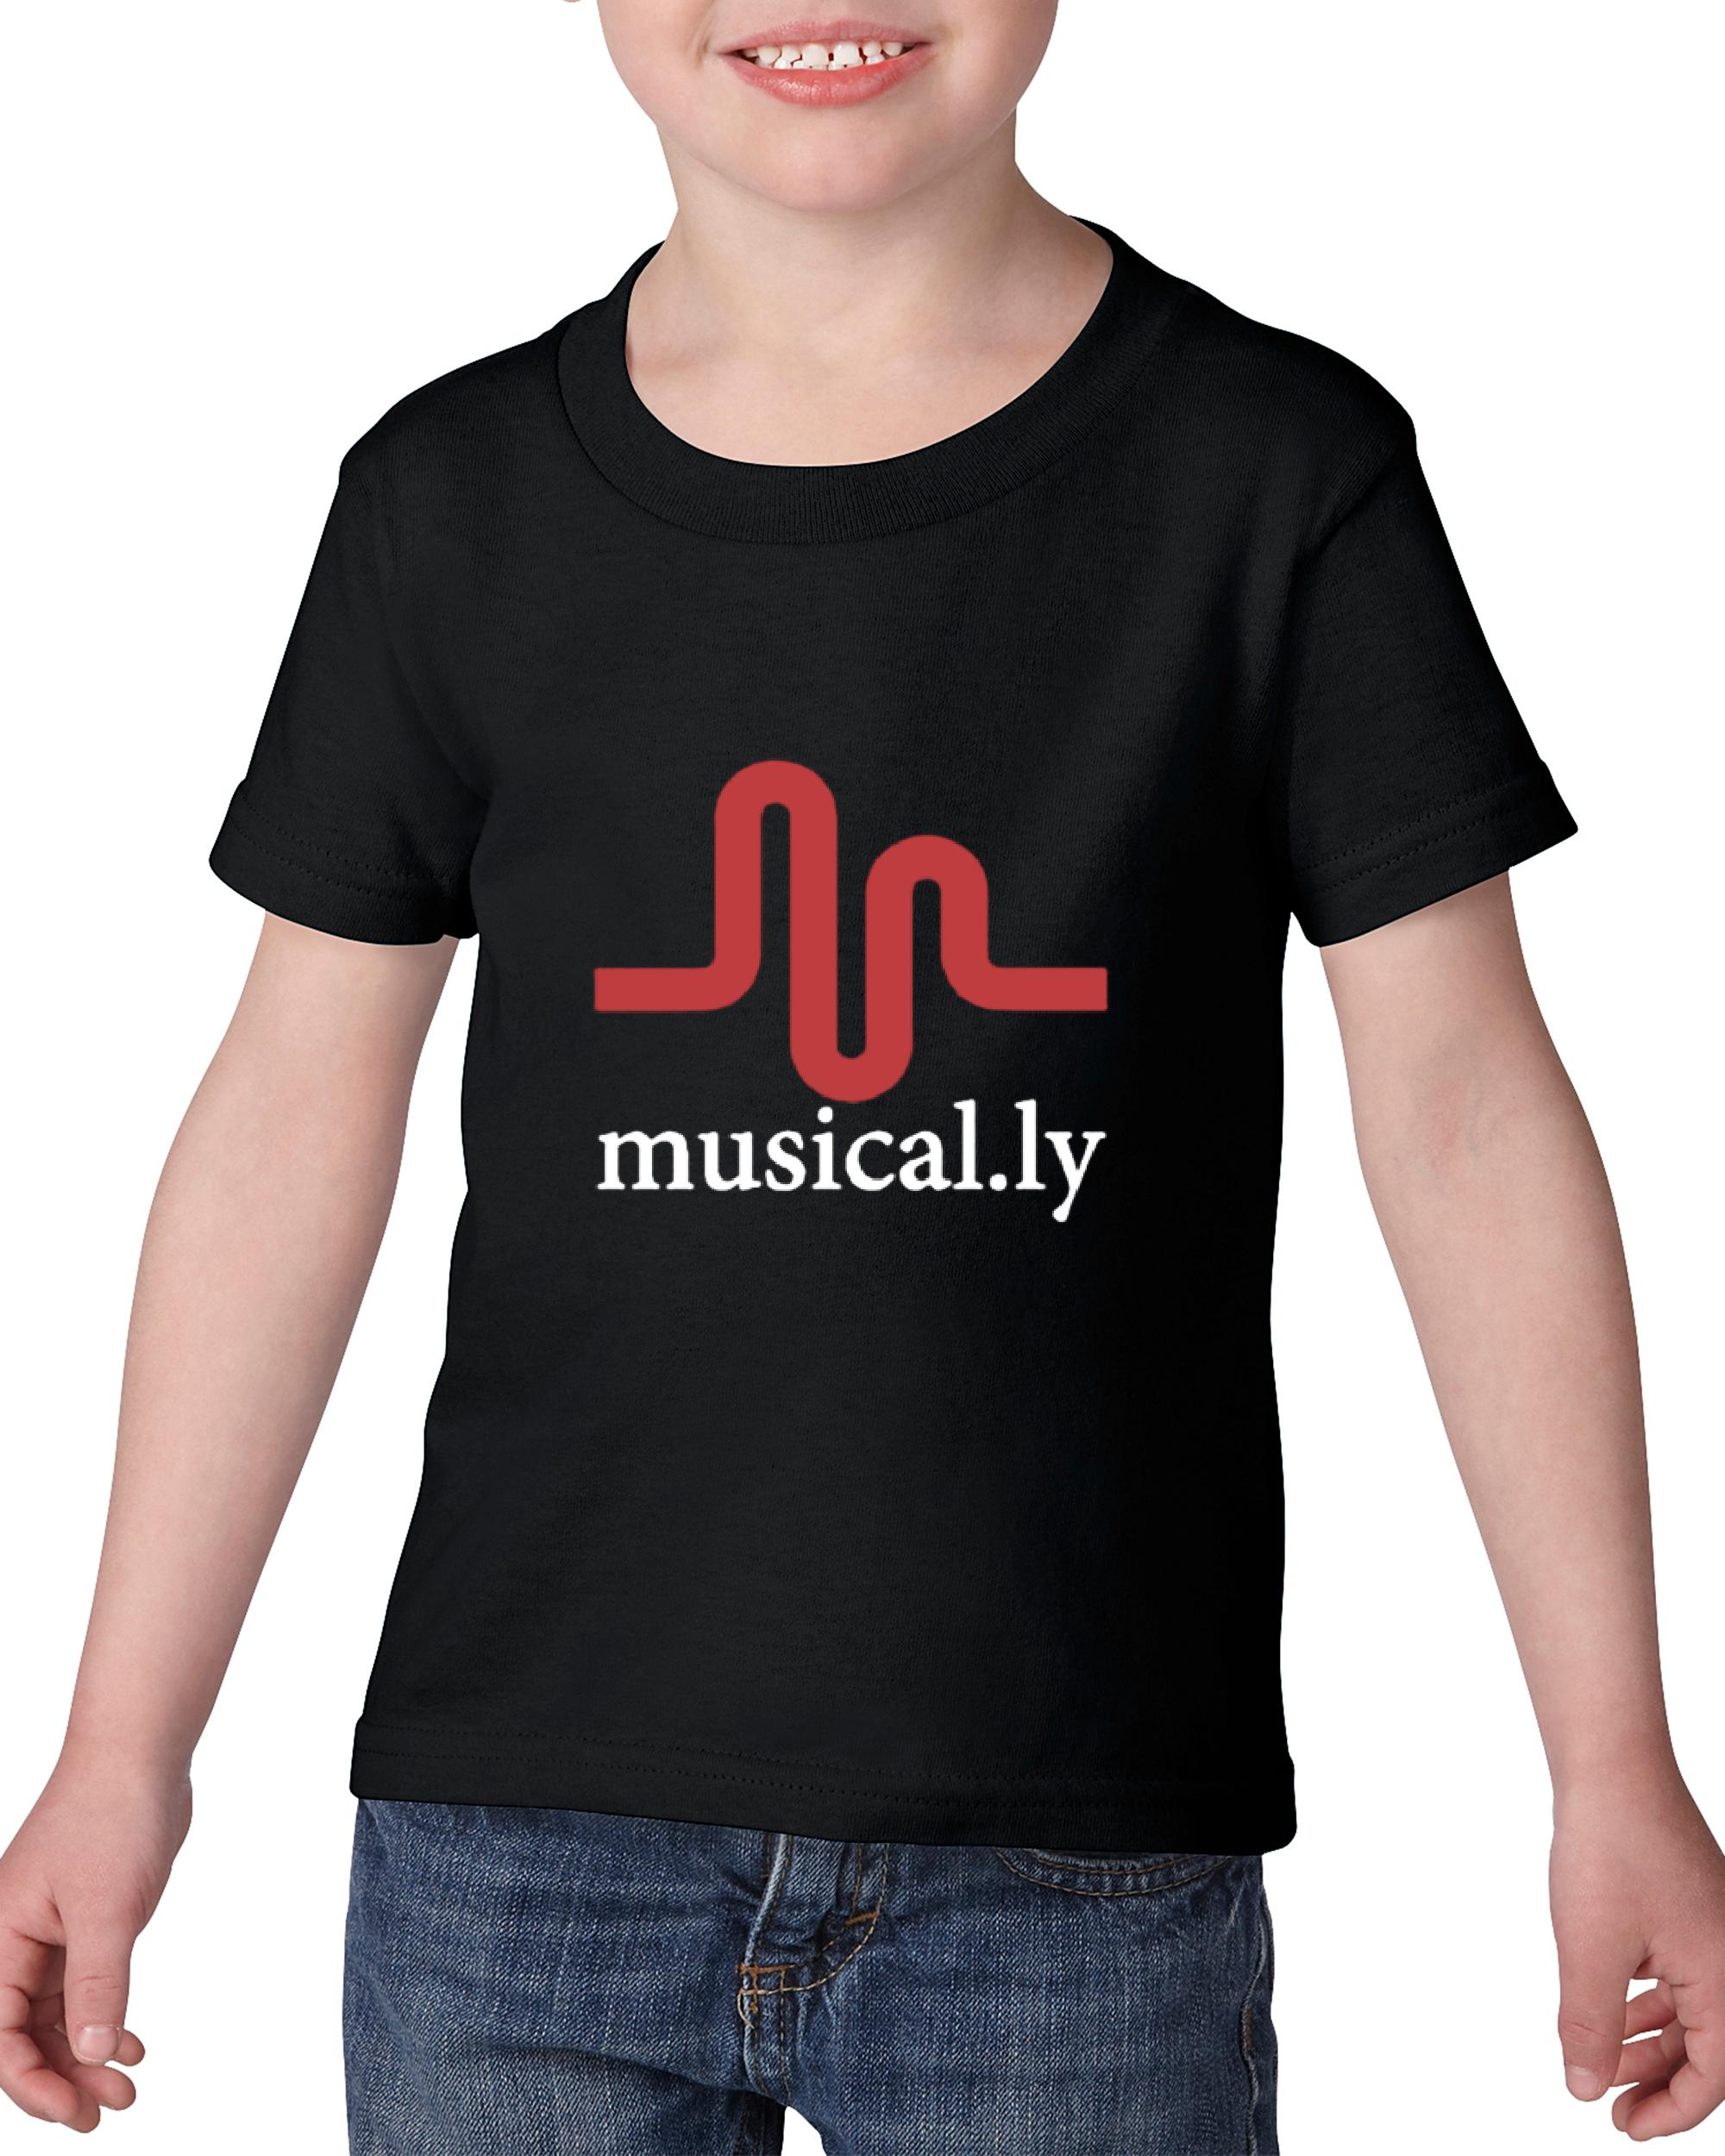 Artix Musical.ly Toddler Kids T-Shirt Tee Clothing